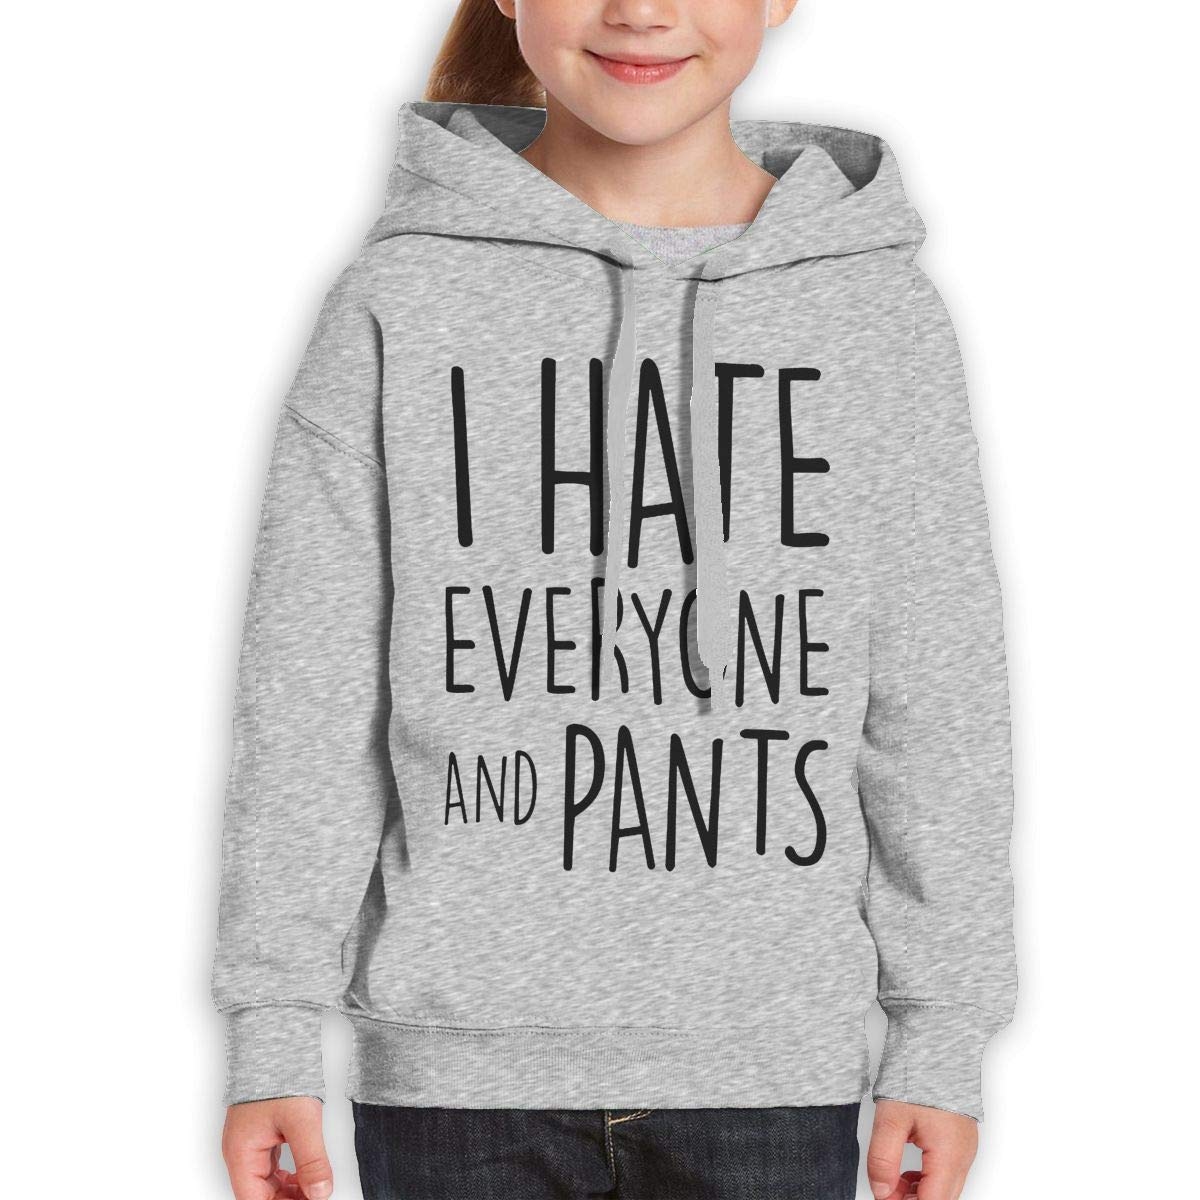 Boys Girls I Hate Everyone and Pants Teen Youth Hoodies Gray